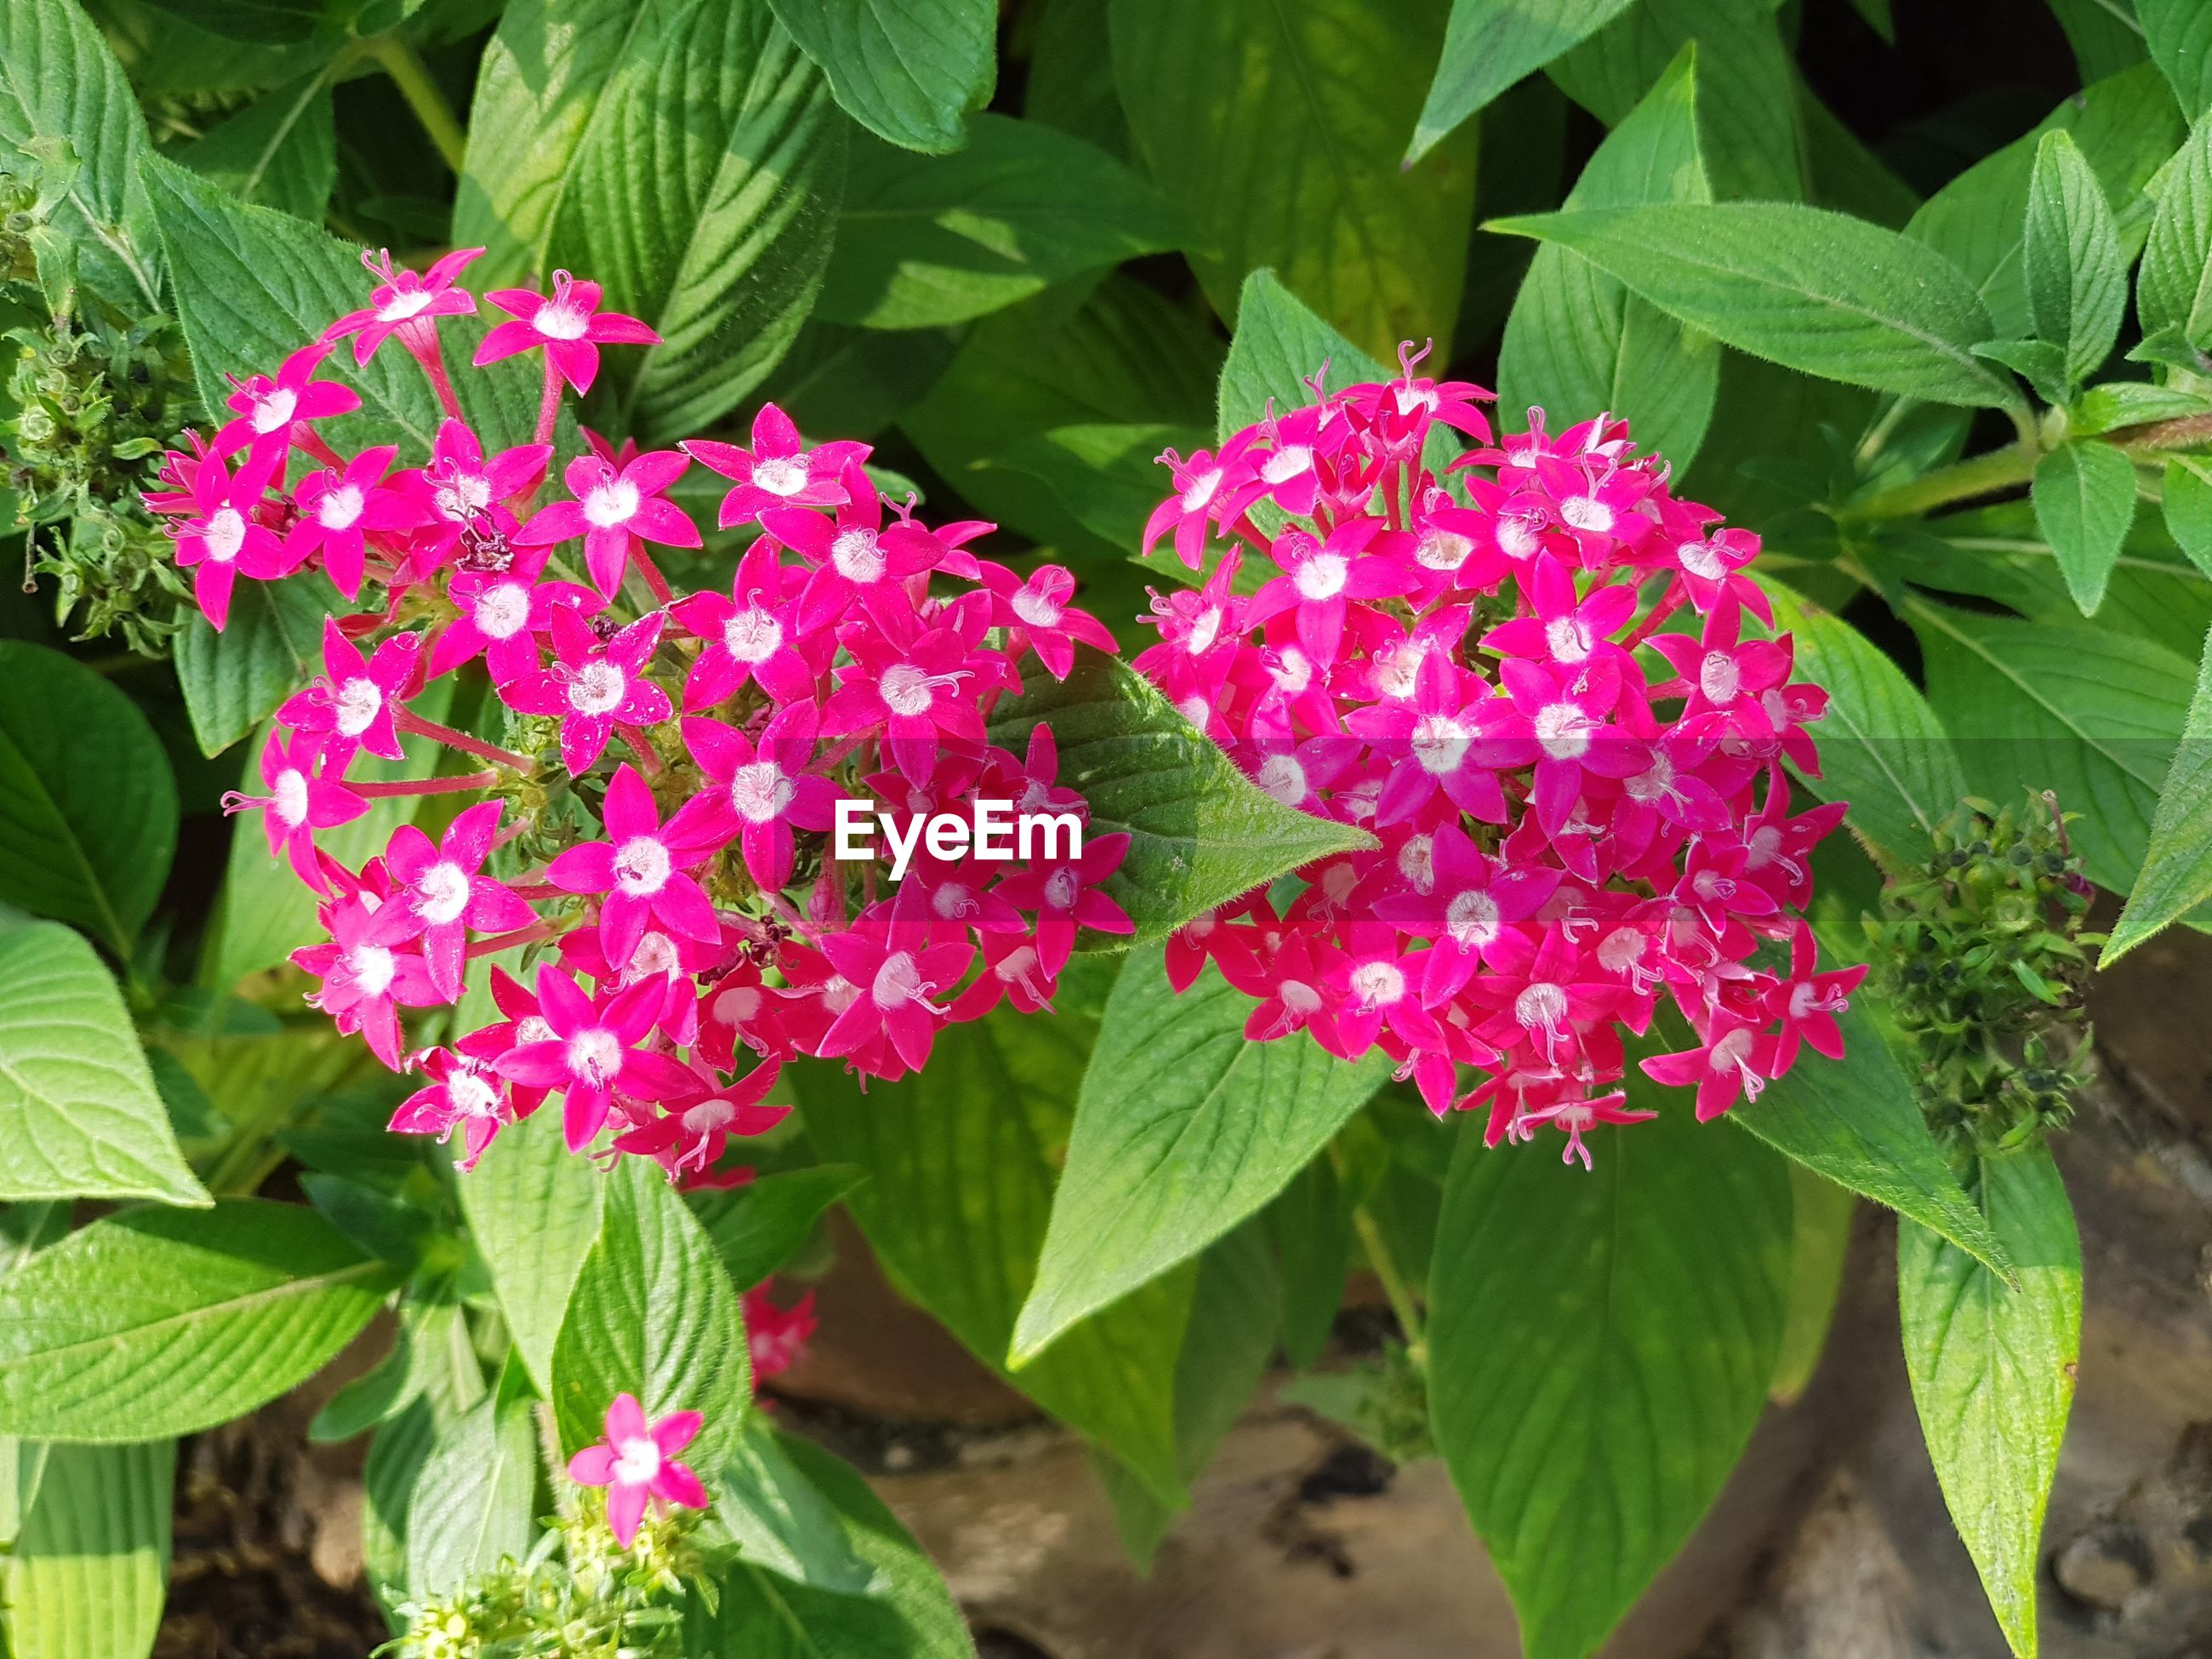 CLOSE-UP OF PINK FLOWER PLANTS